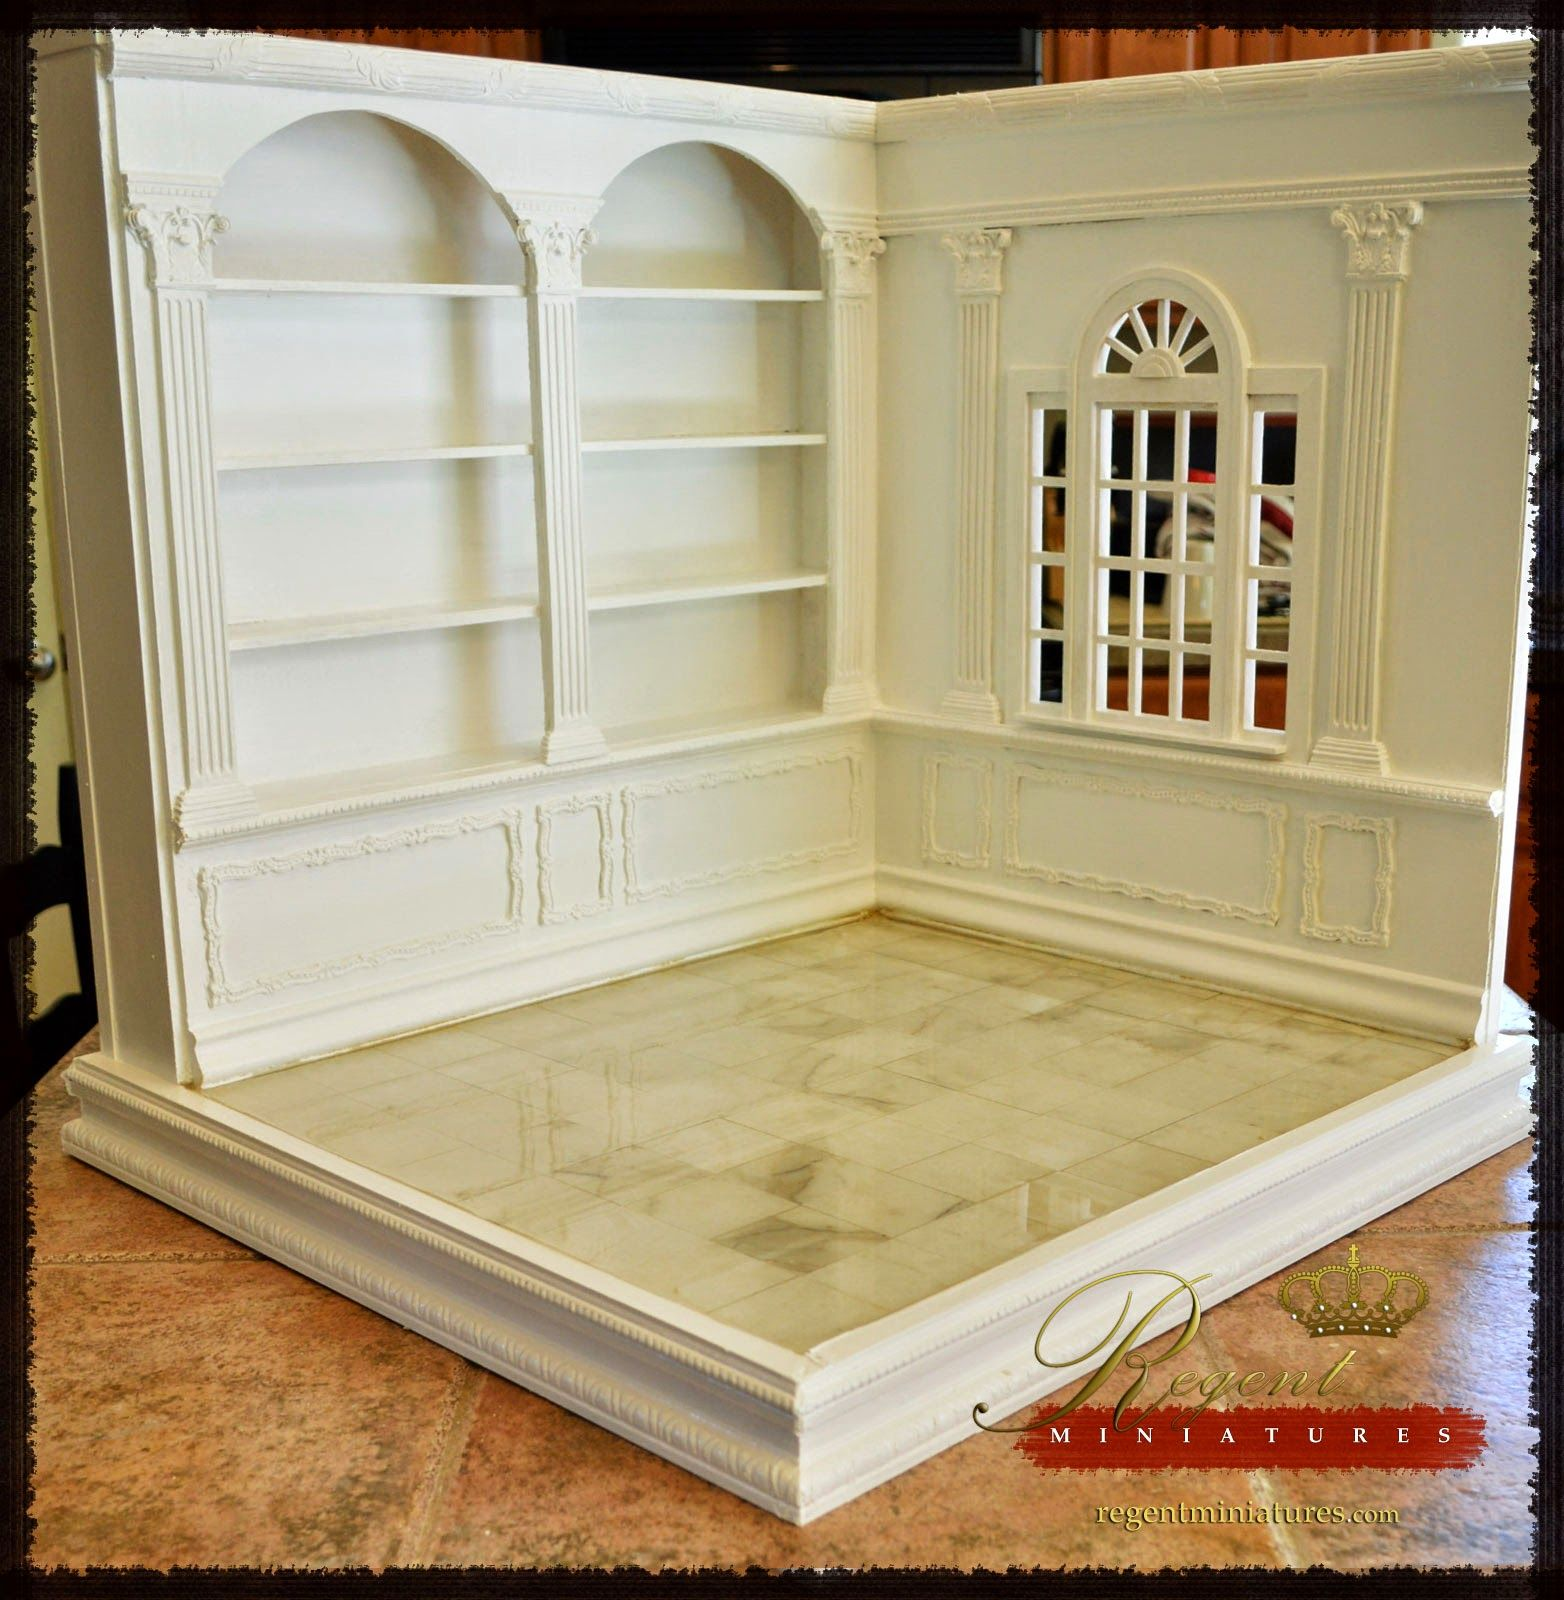 Regent Miniatures: 1:6 Scale Room Box With Library Coming